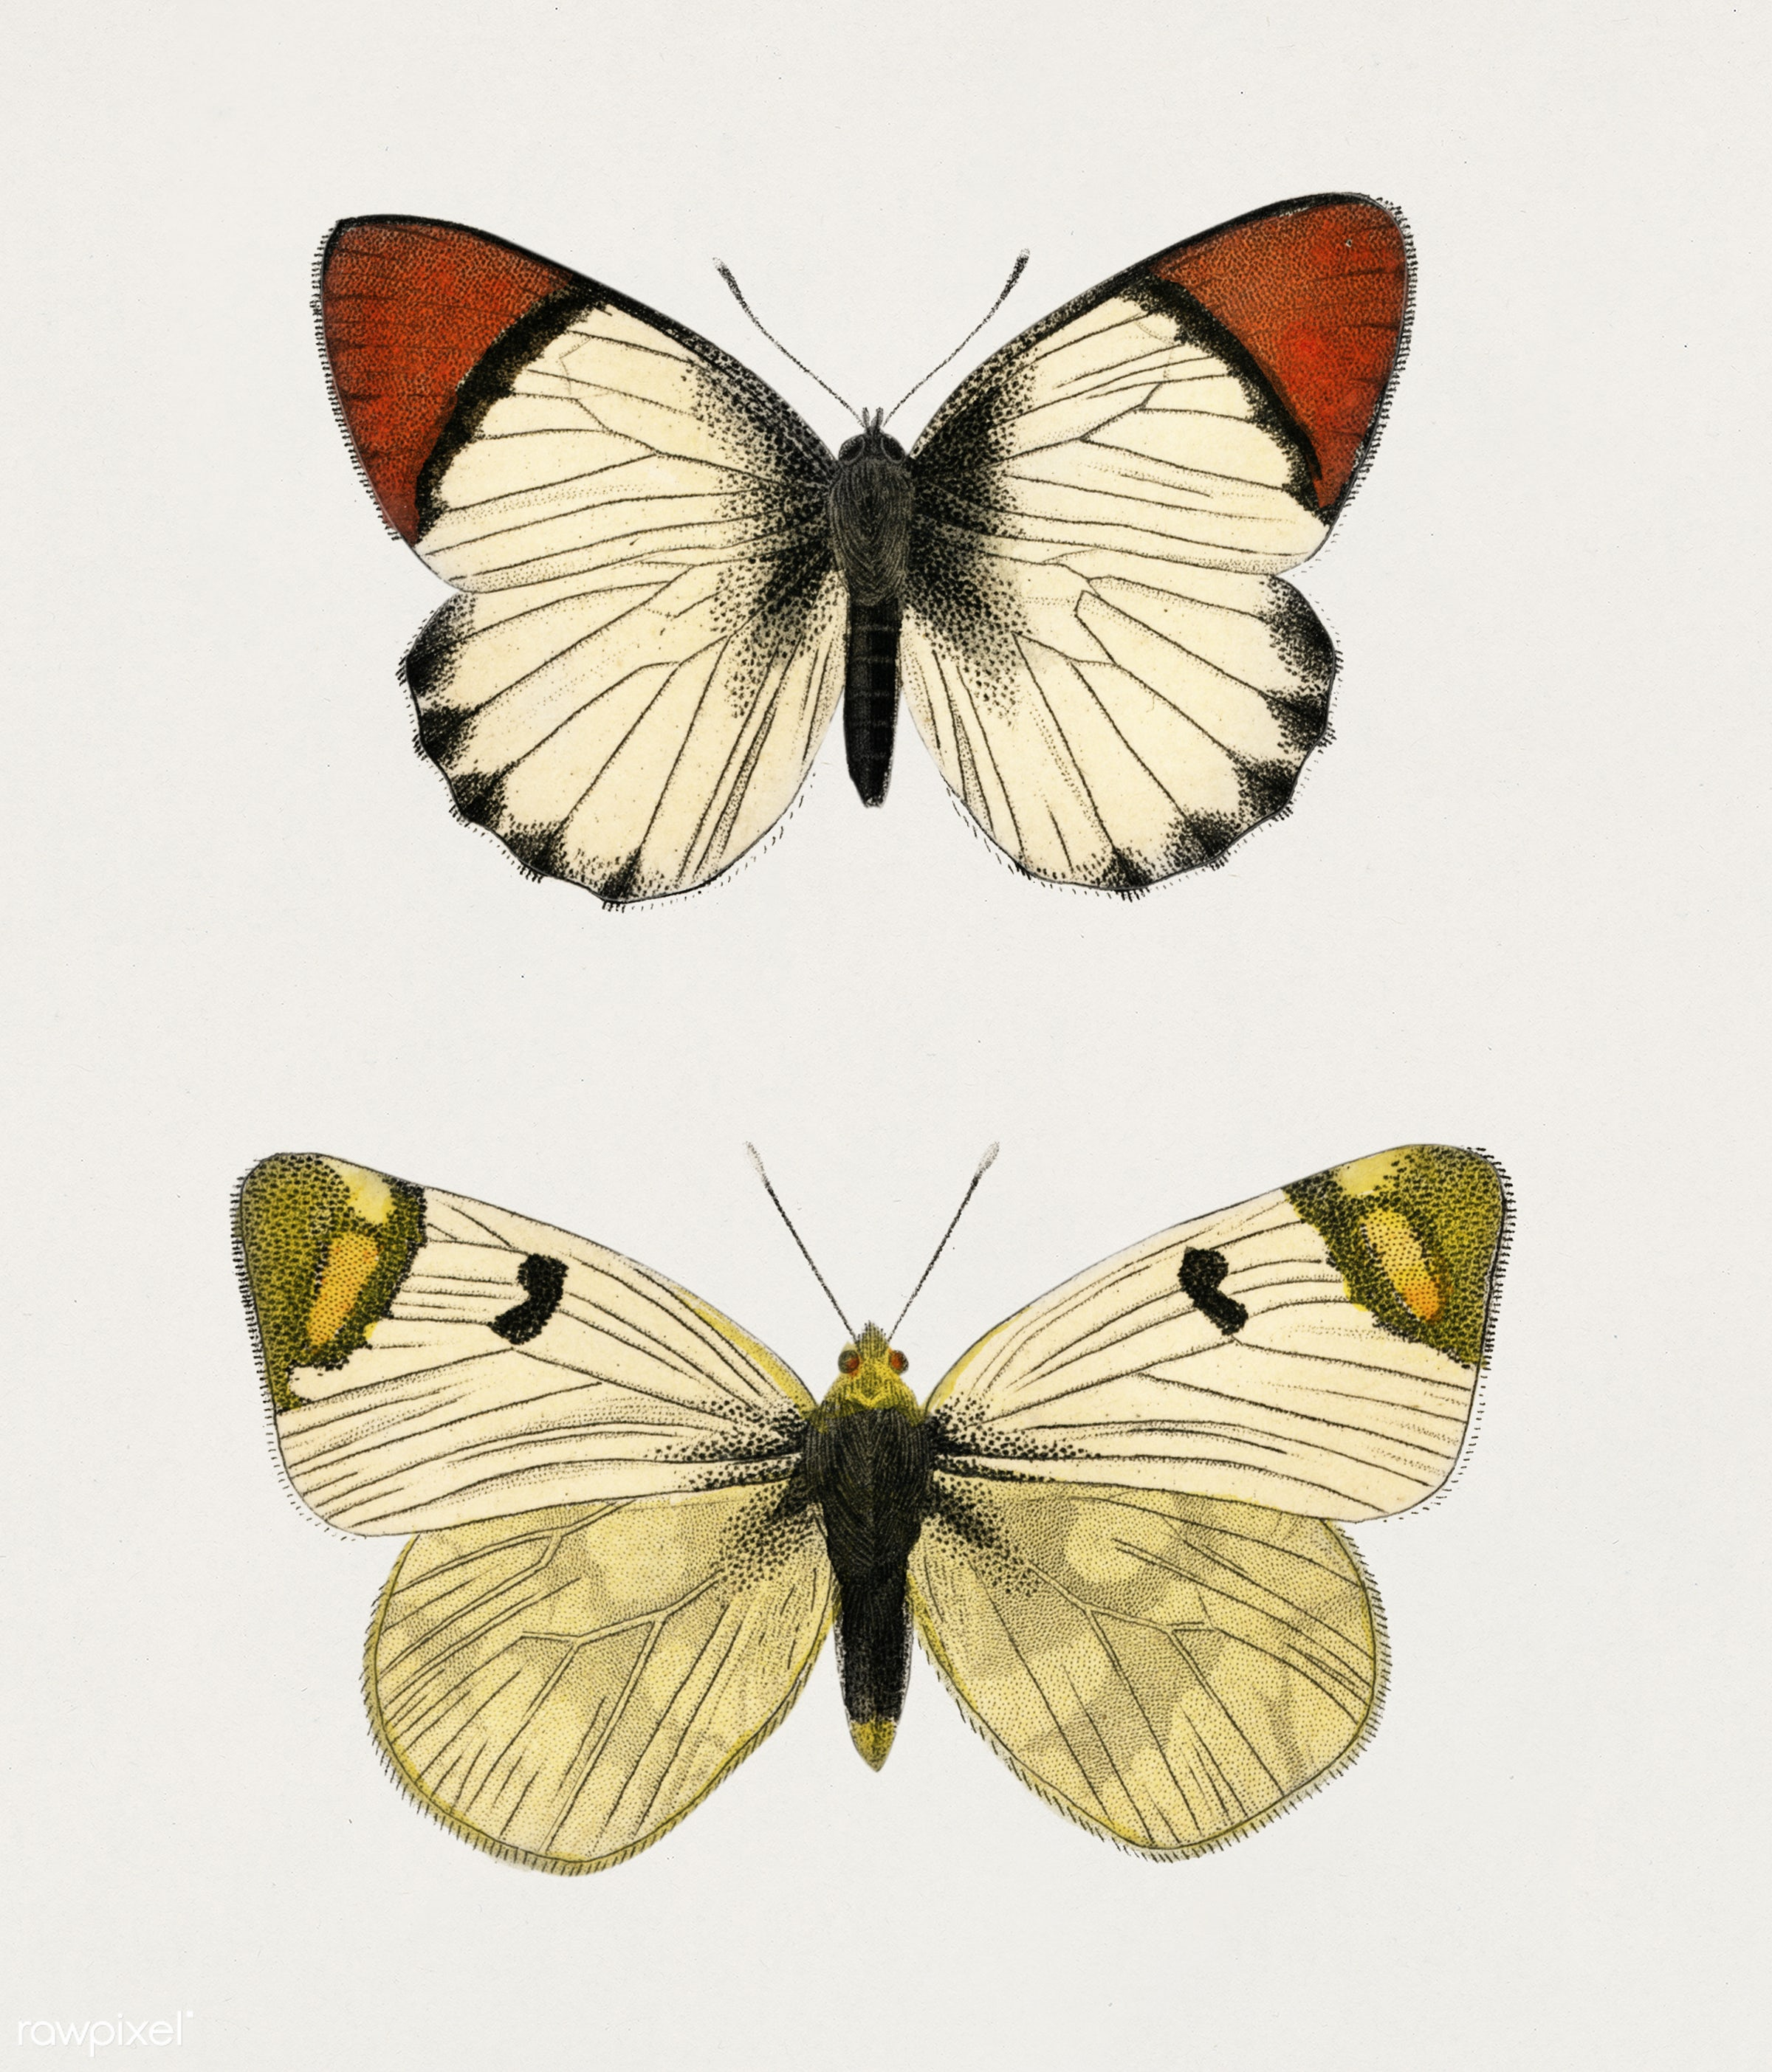 Anthocharis eupompe and Zegris eupheme illustrated by Charles Dessalines D' Orbigny (1806-1876). Digitally enhanced from...